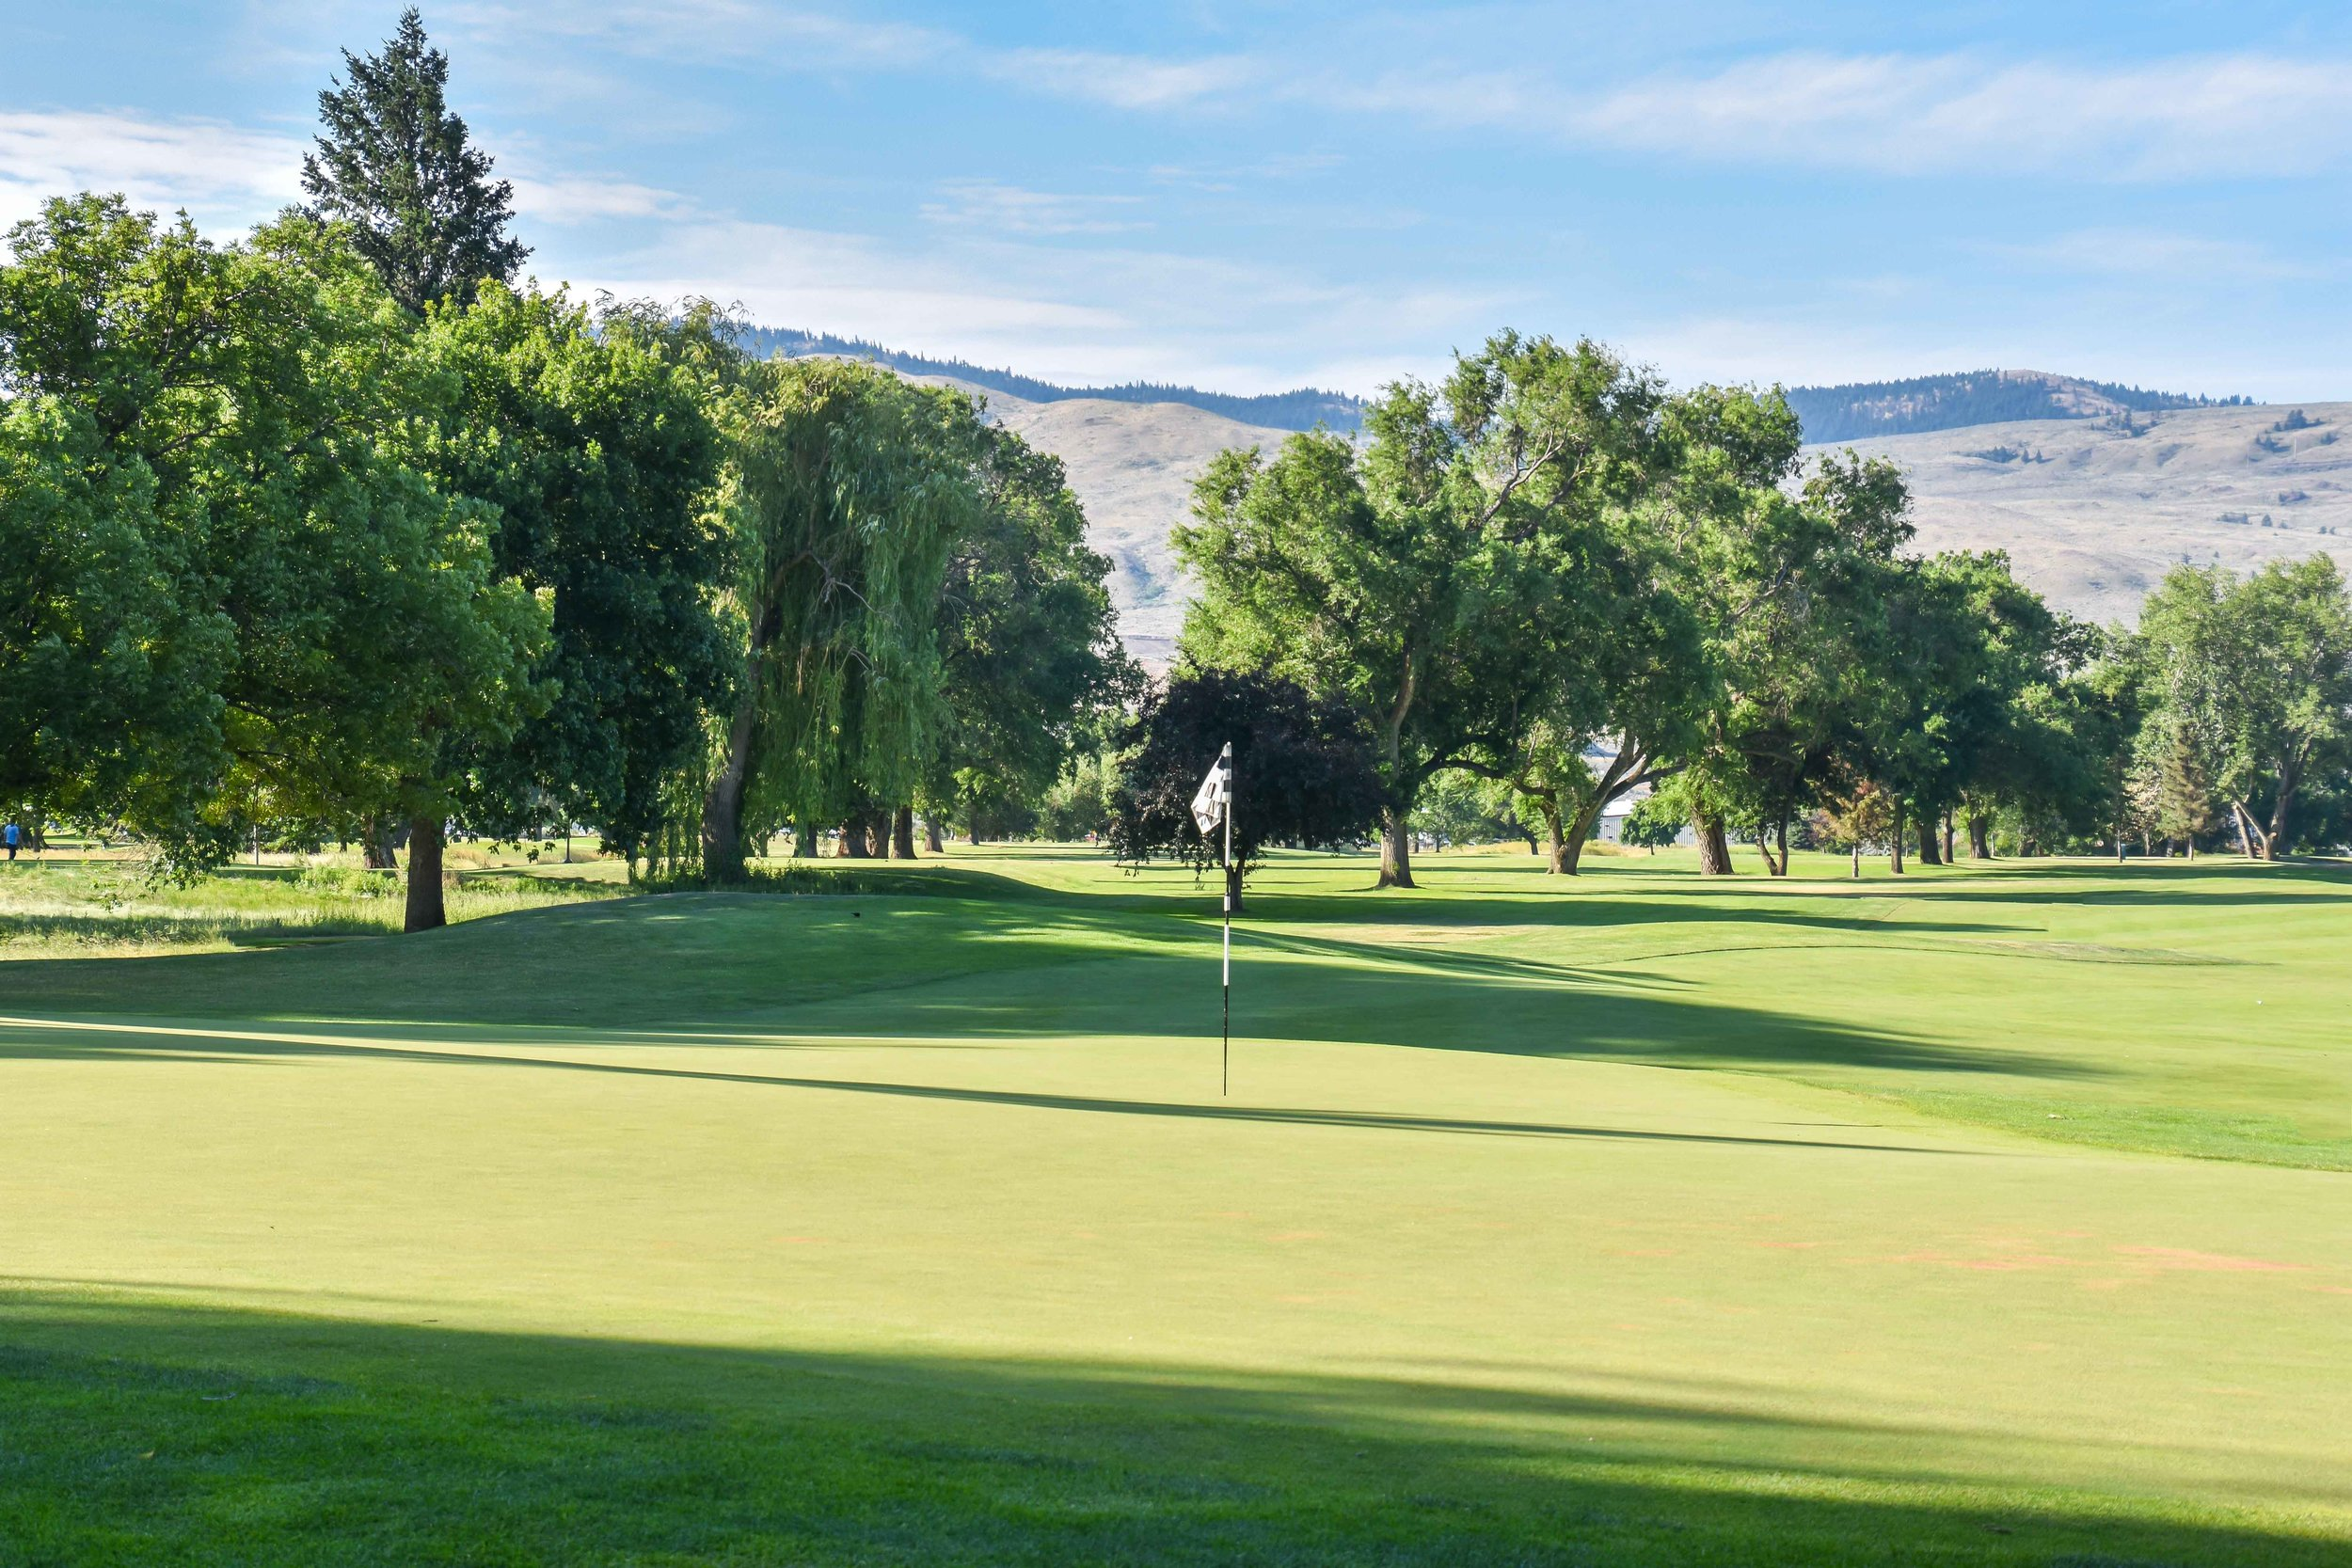 The 9th hole at Kamloops Golf & Country Club